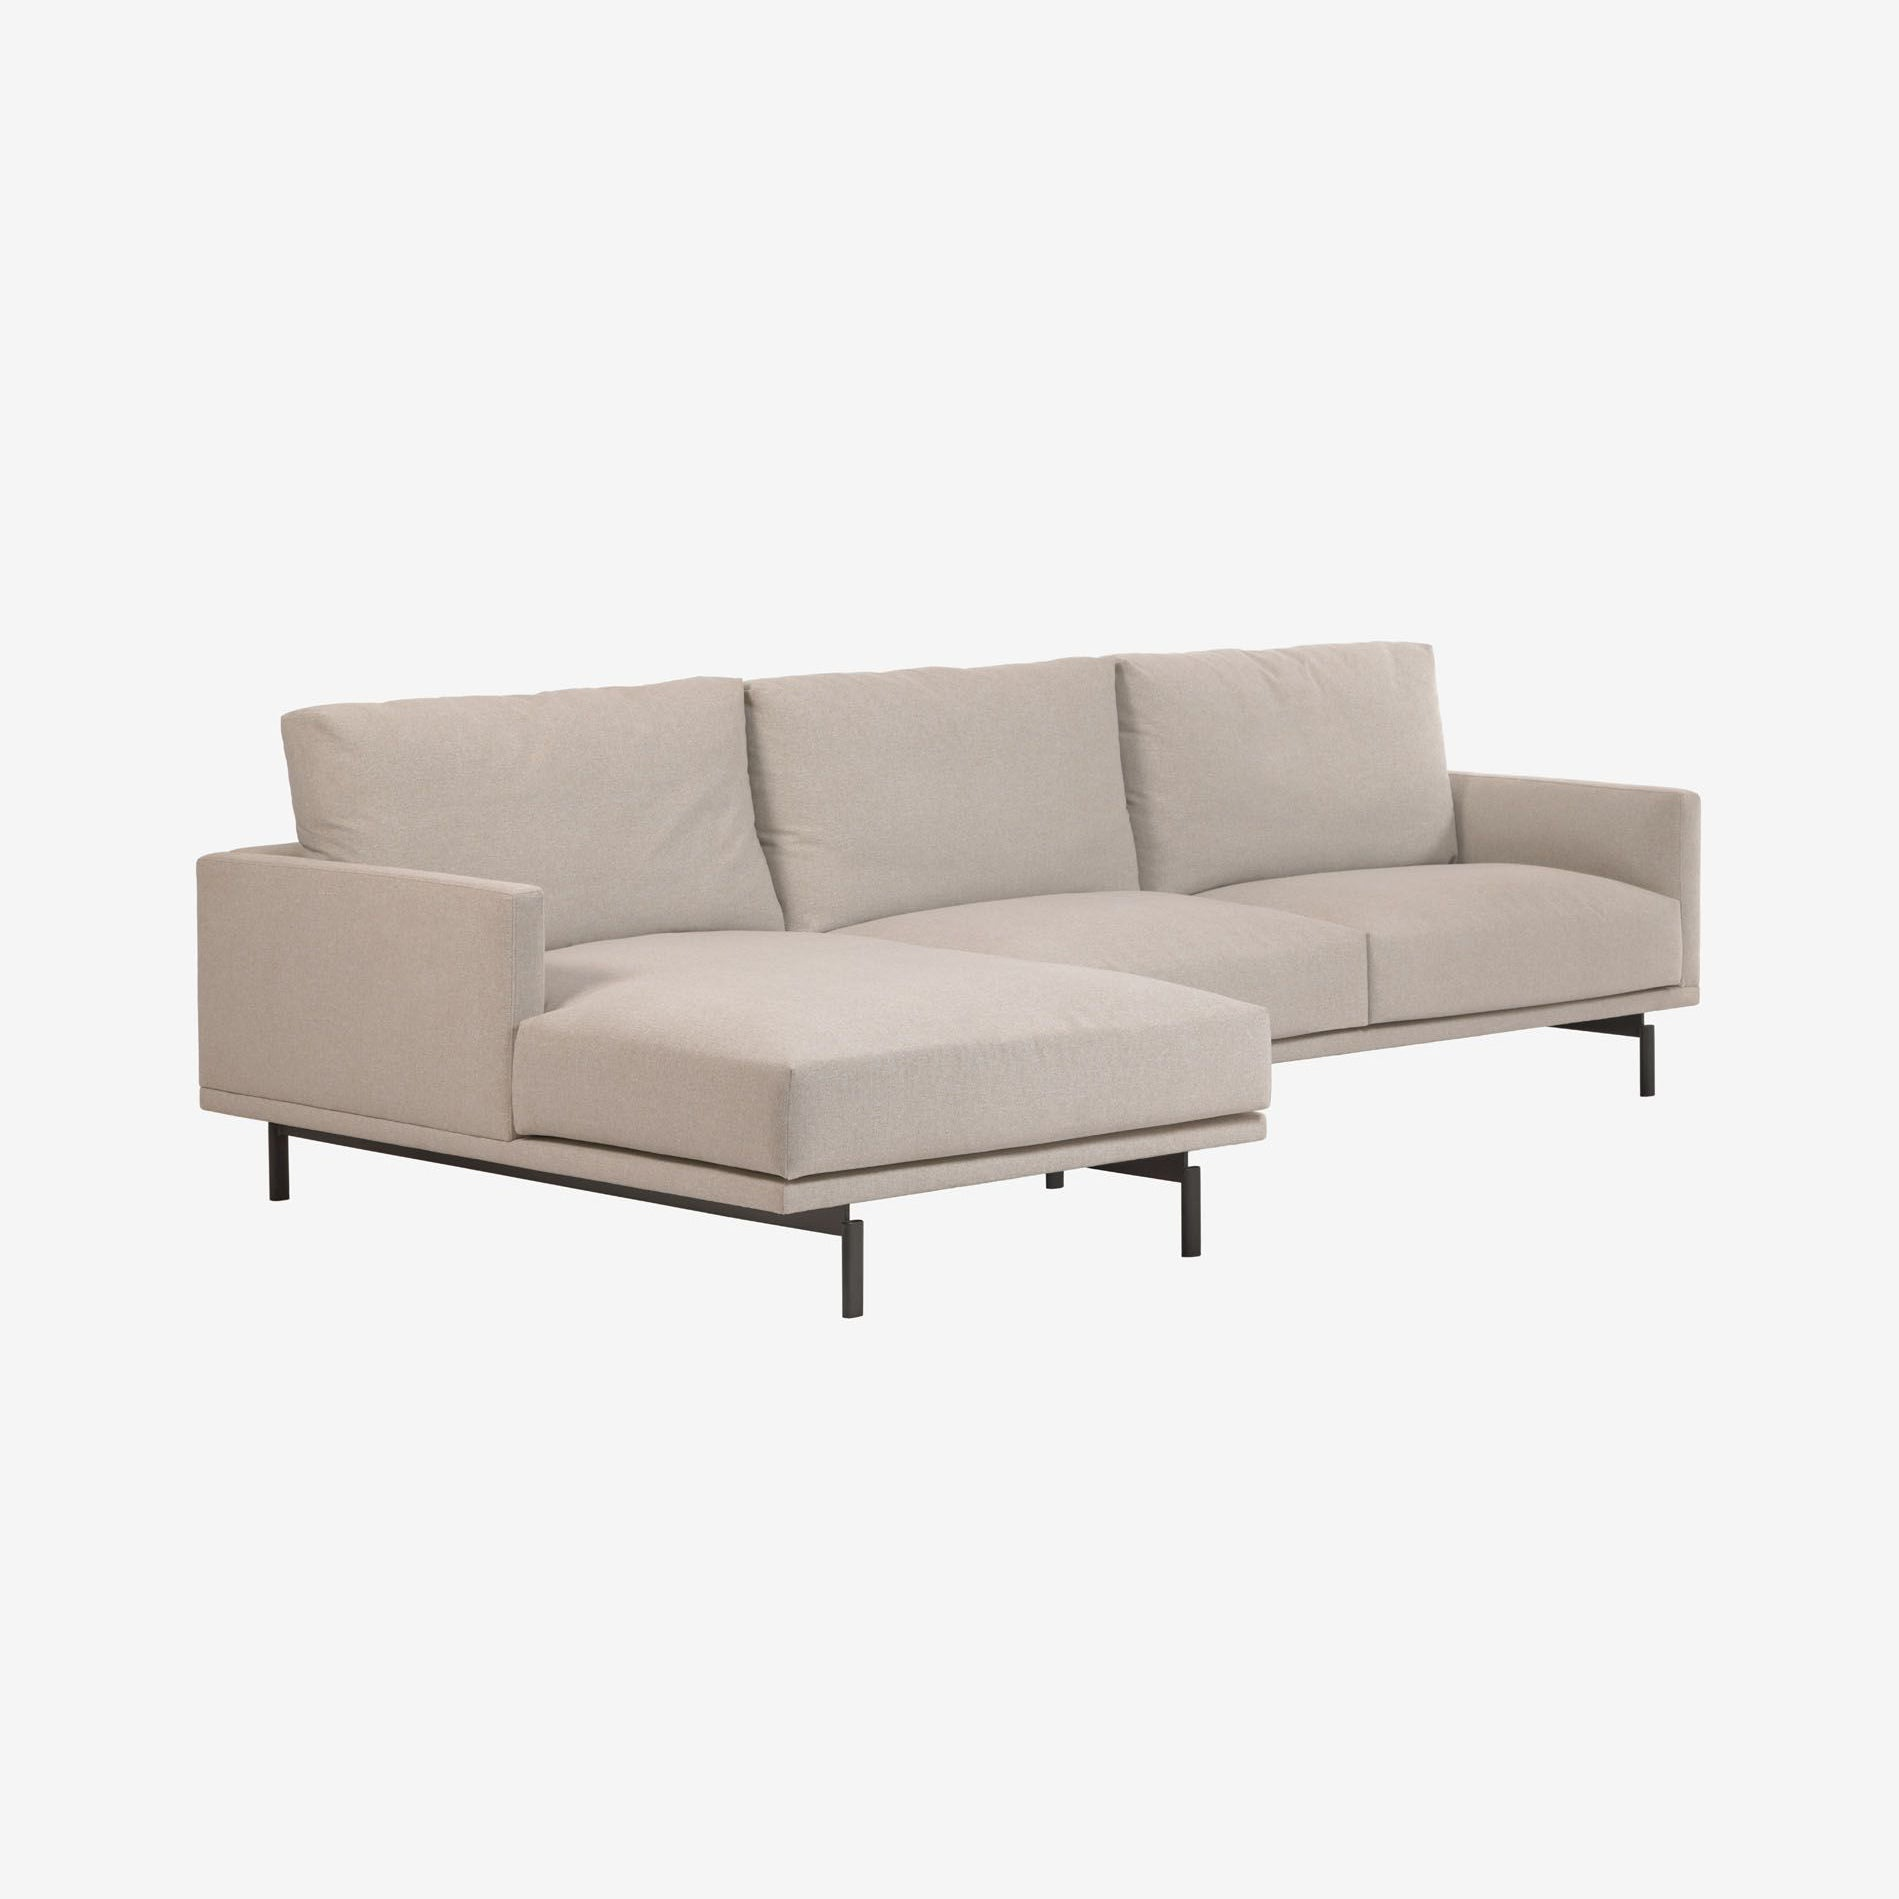 3 Persoonsbank Galene met chaise longue links